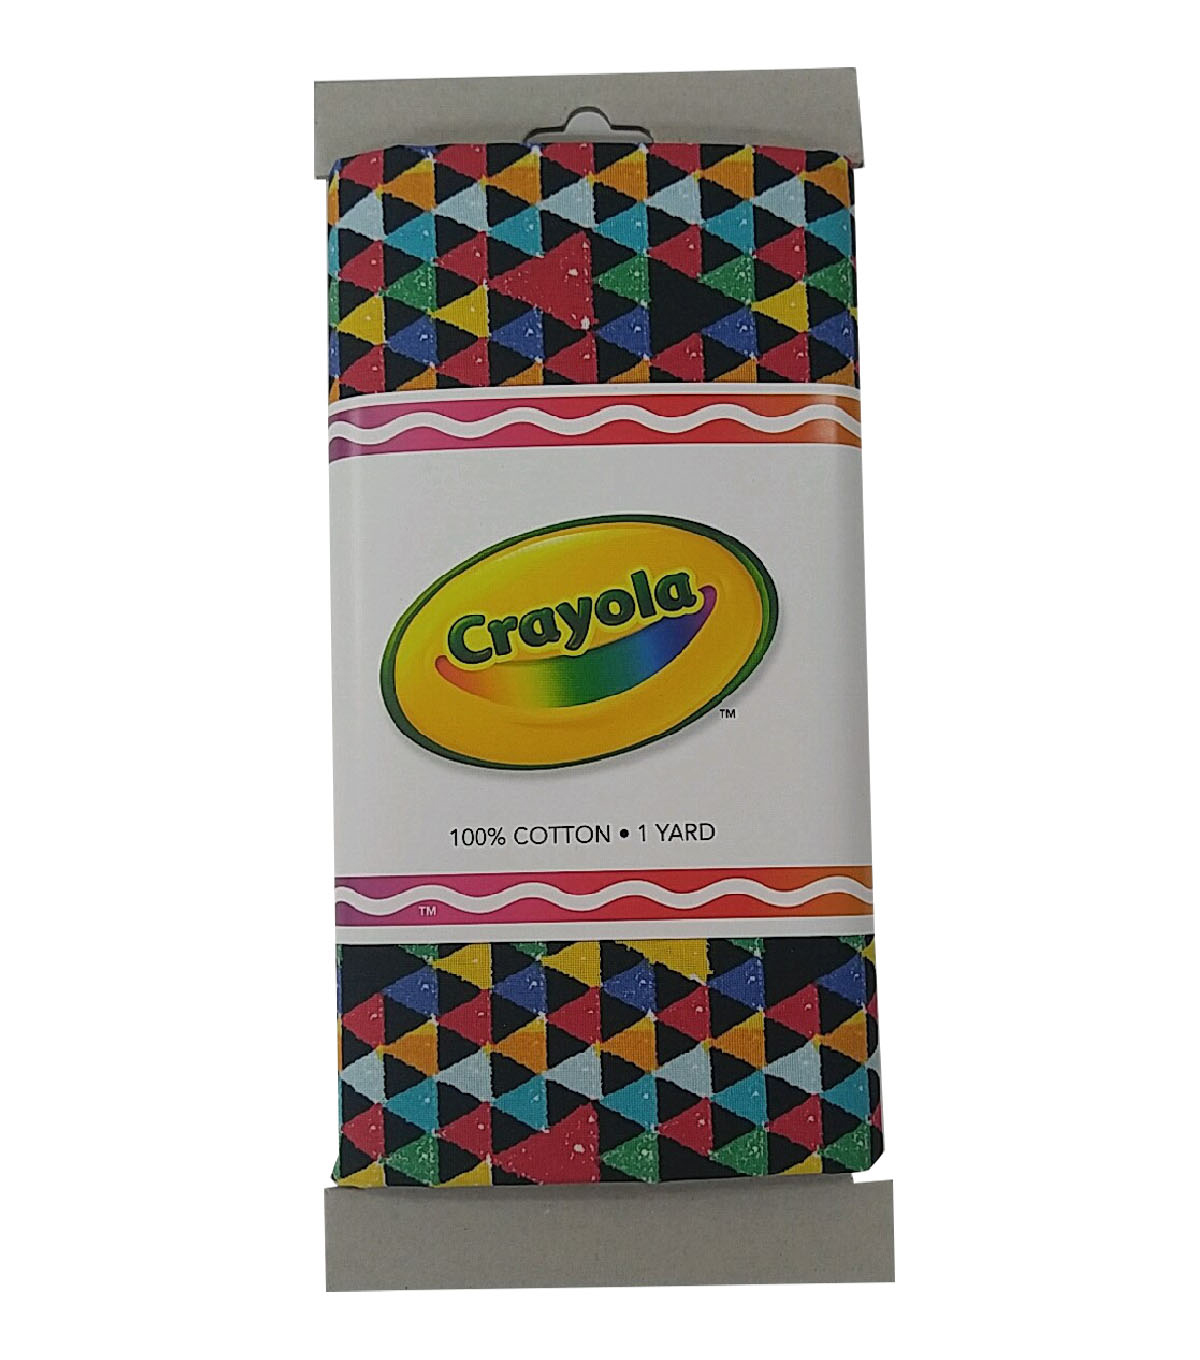 Crayola® Fabric 1yd Cut-Triangle Multi Black